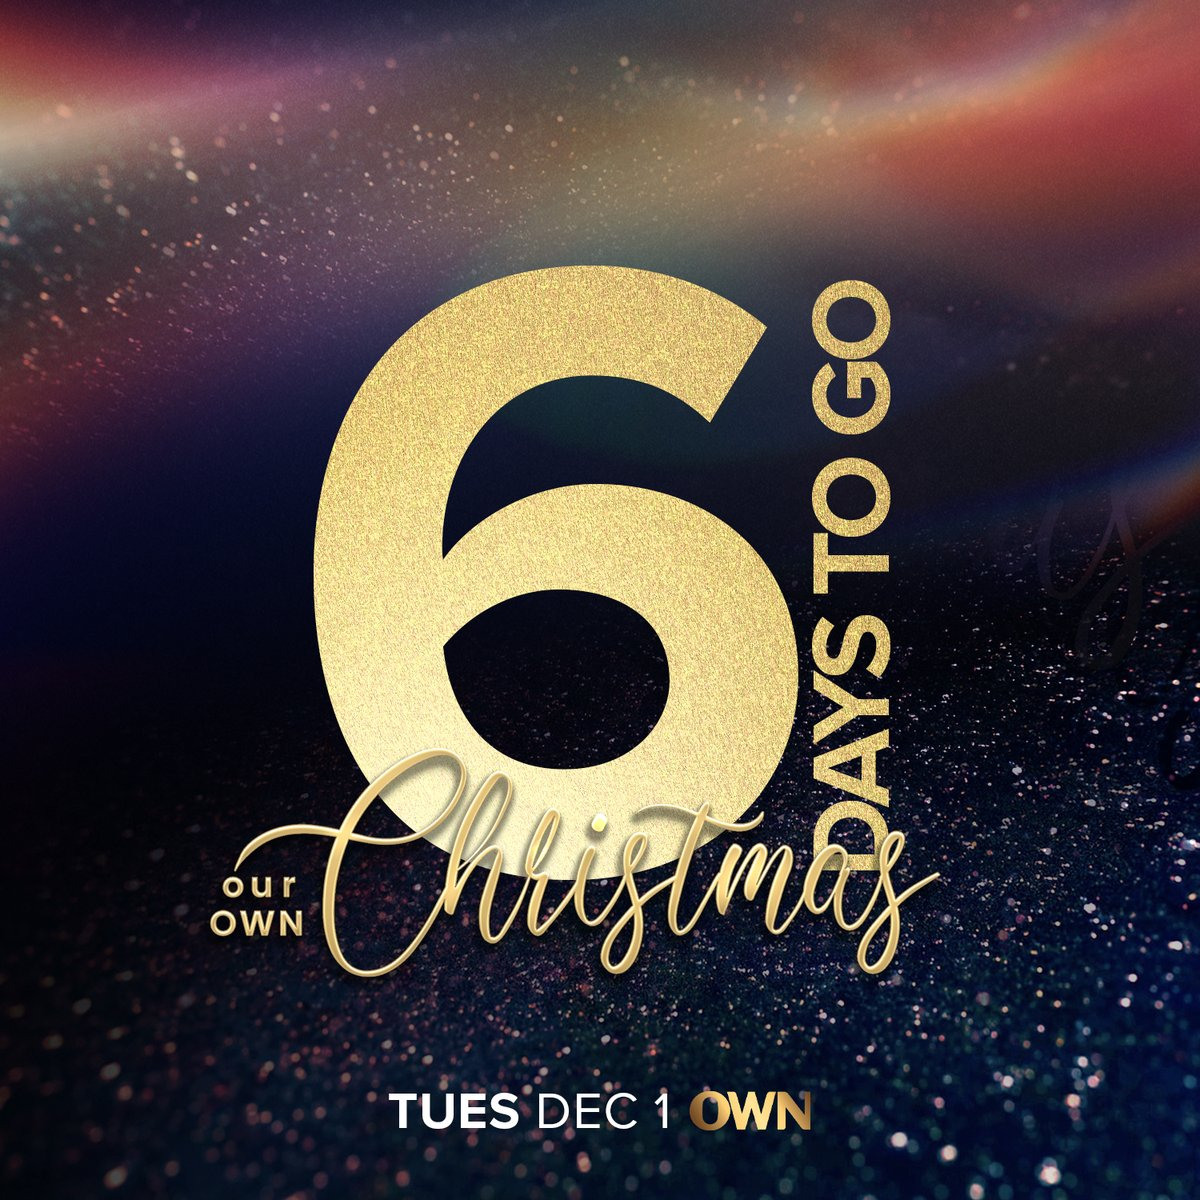 We're less than a week out from Our OWN Christmas Gospel Special! Set those DVRs! Part of #OurOWNChristmas 🎁 https://t.co/IWWUWTACoj